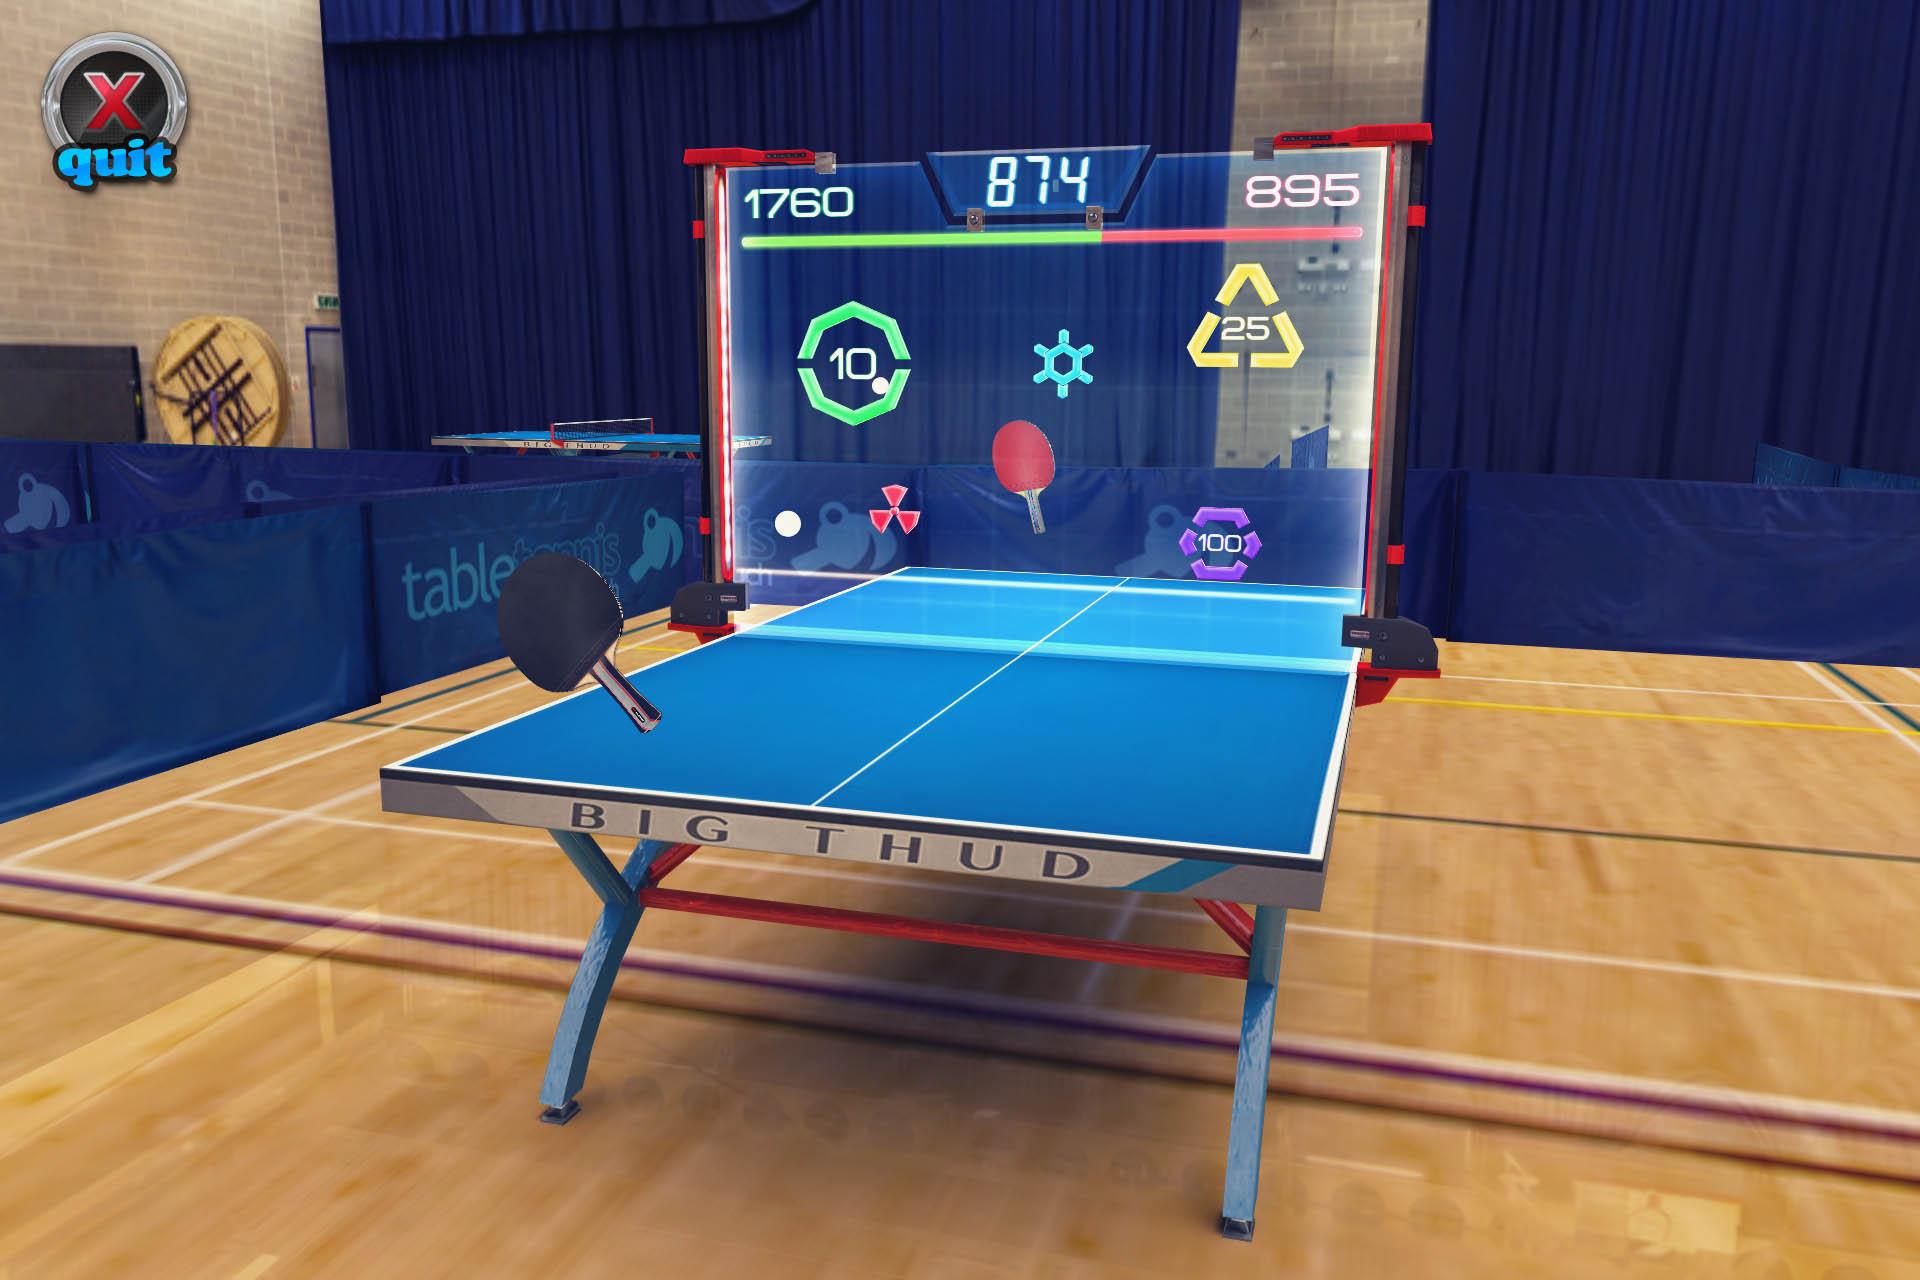 Table Tennis Touch gets online multiplayer and much more in 2.0 update [Update]